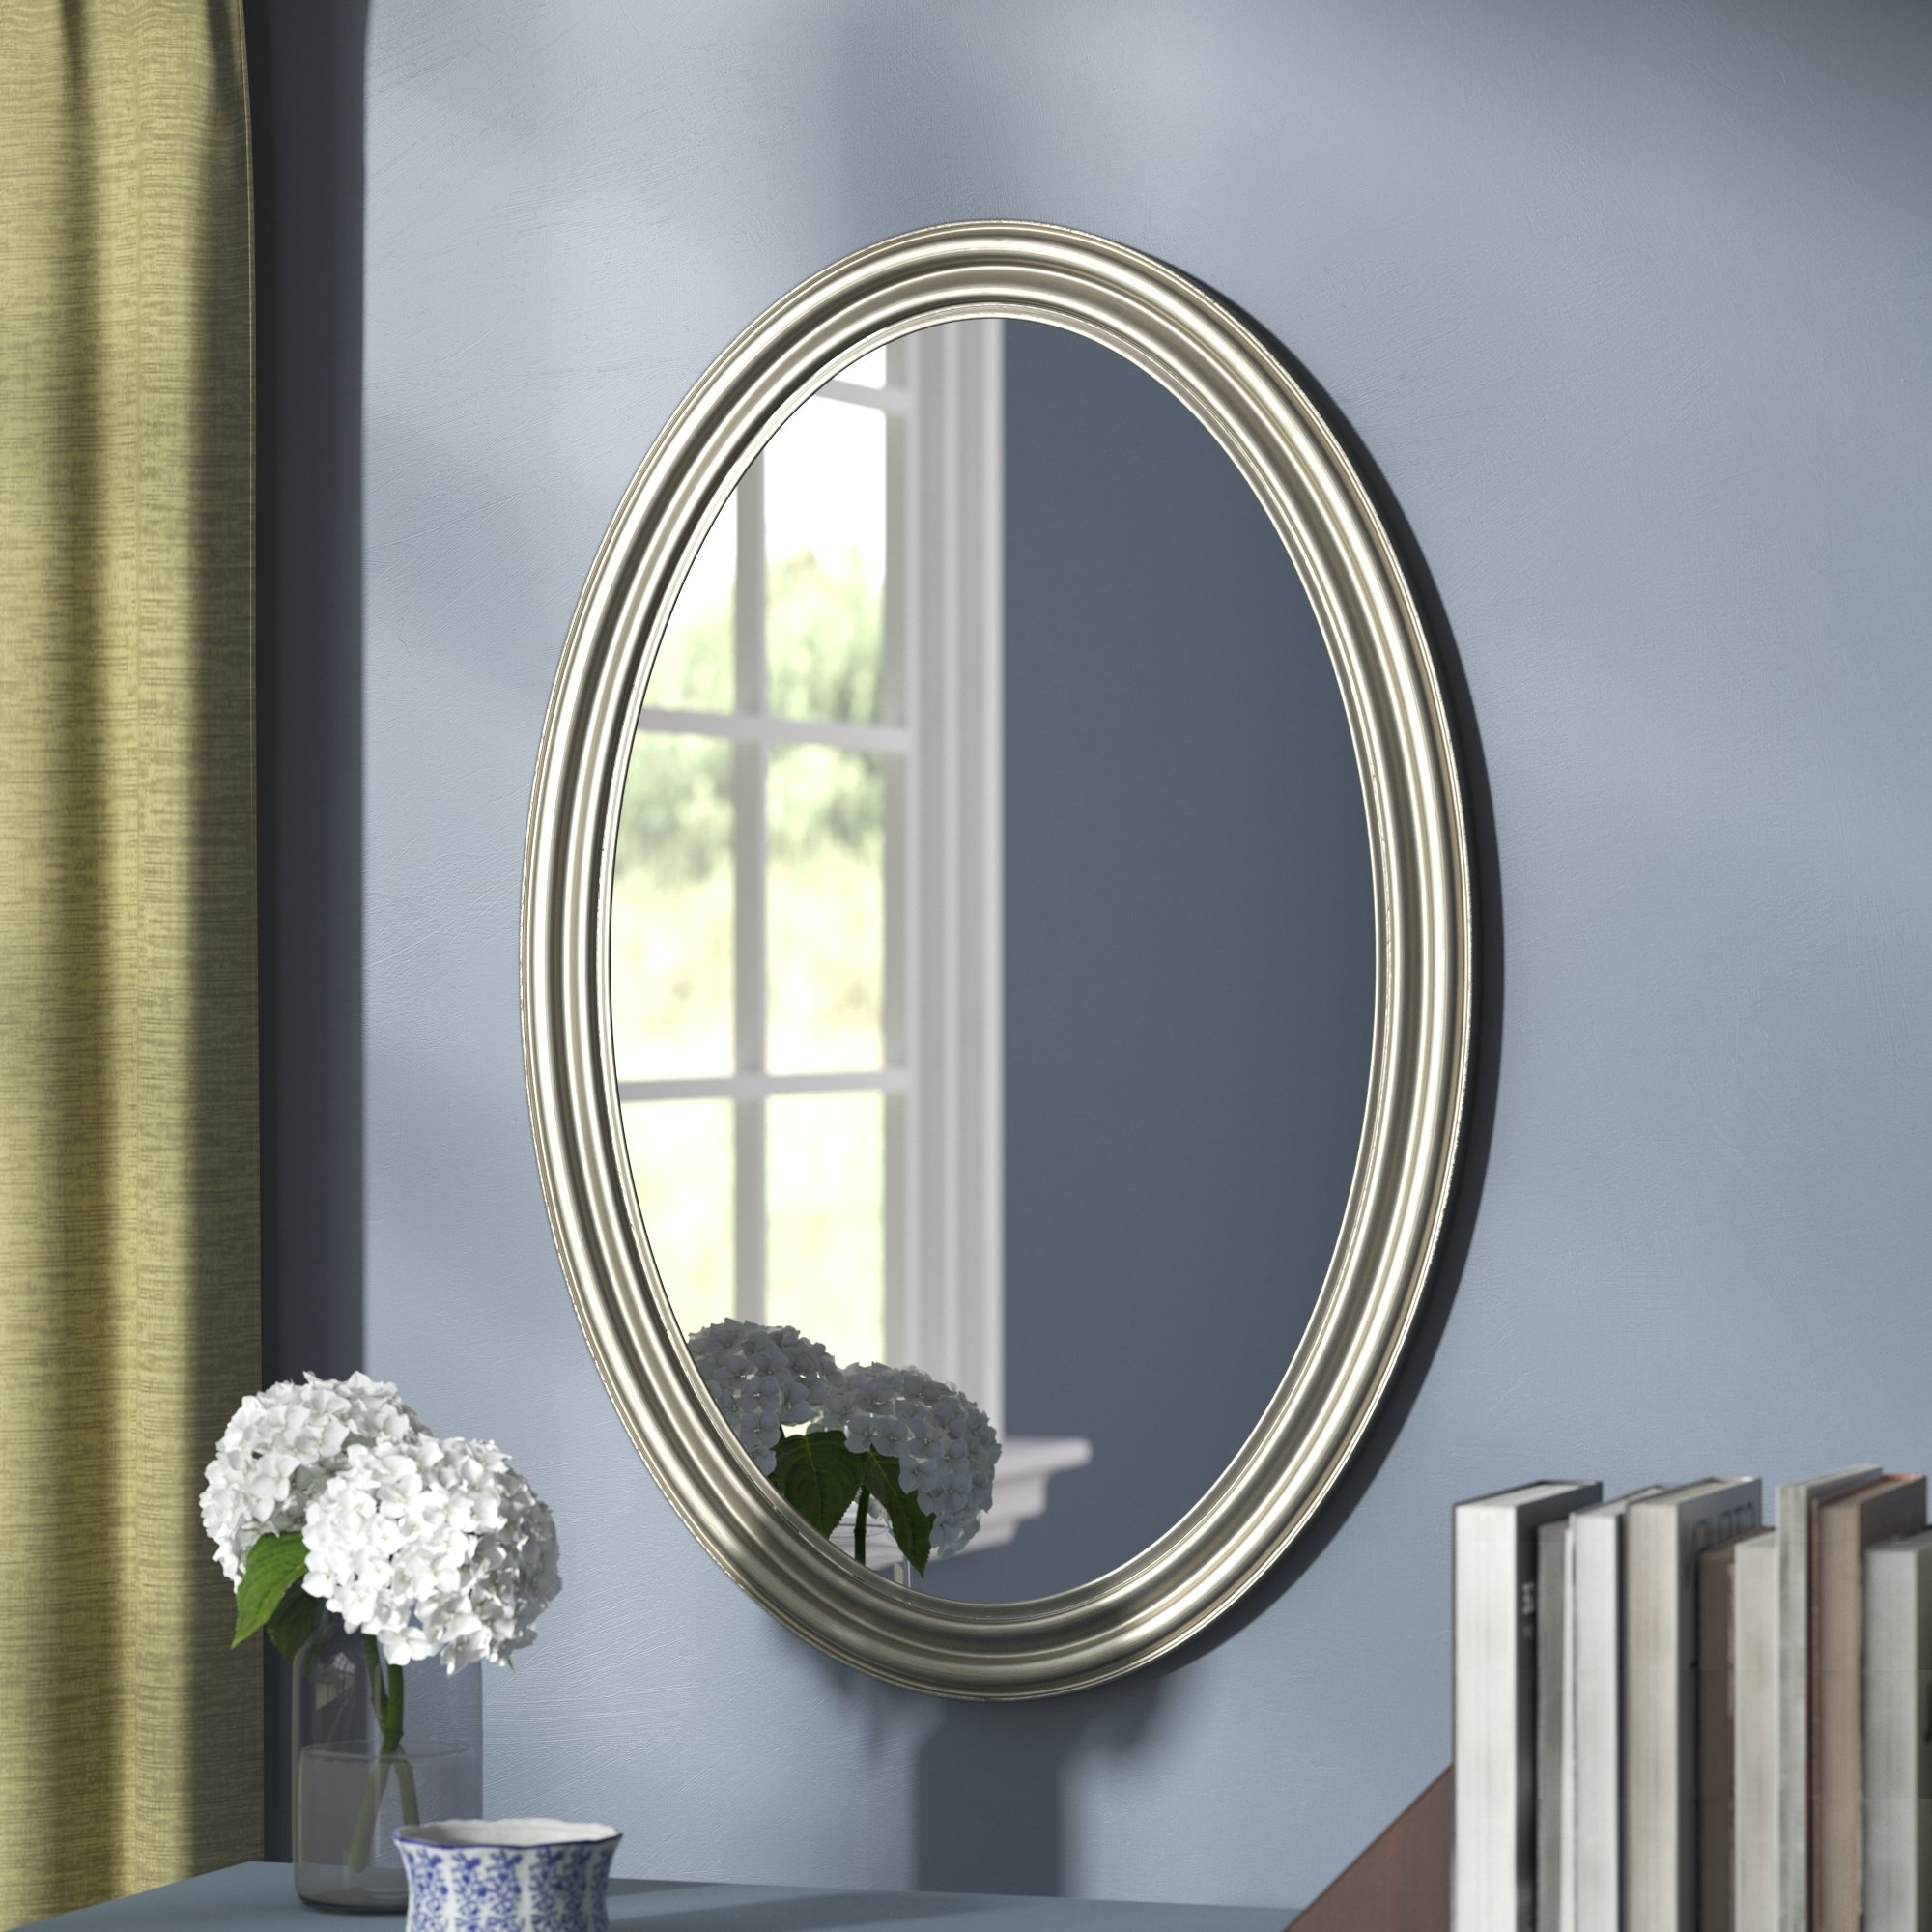 Charters Towers Accent Mirrors Throughout Trendy Hesson Mirror (View 3 of 20)